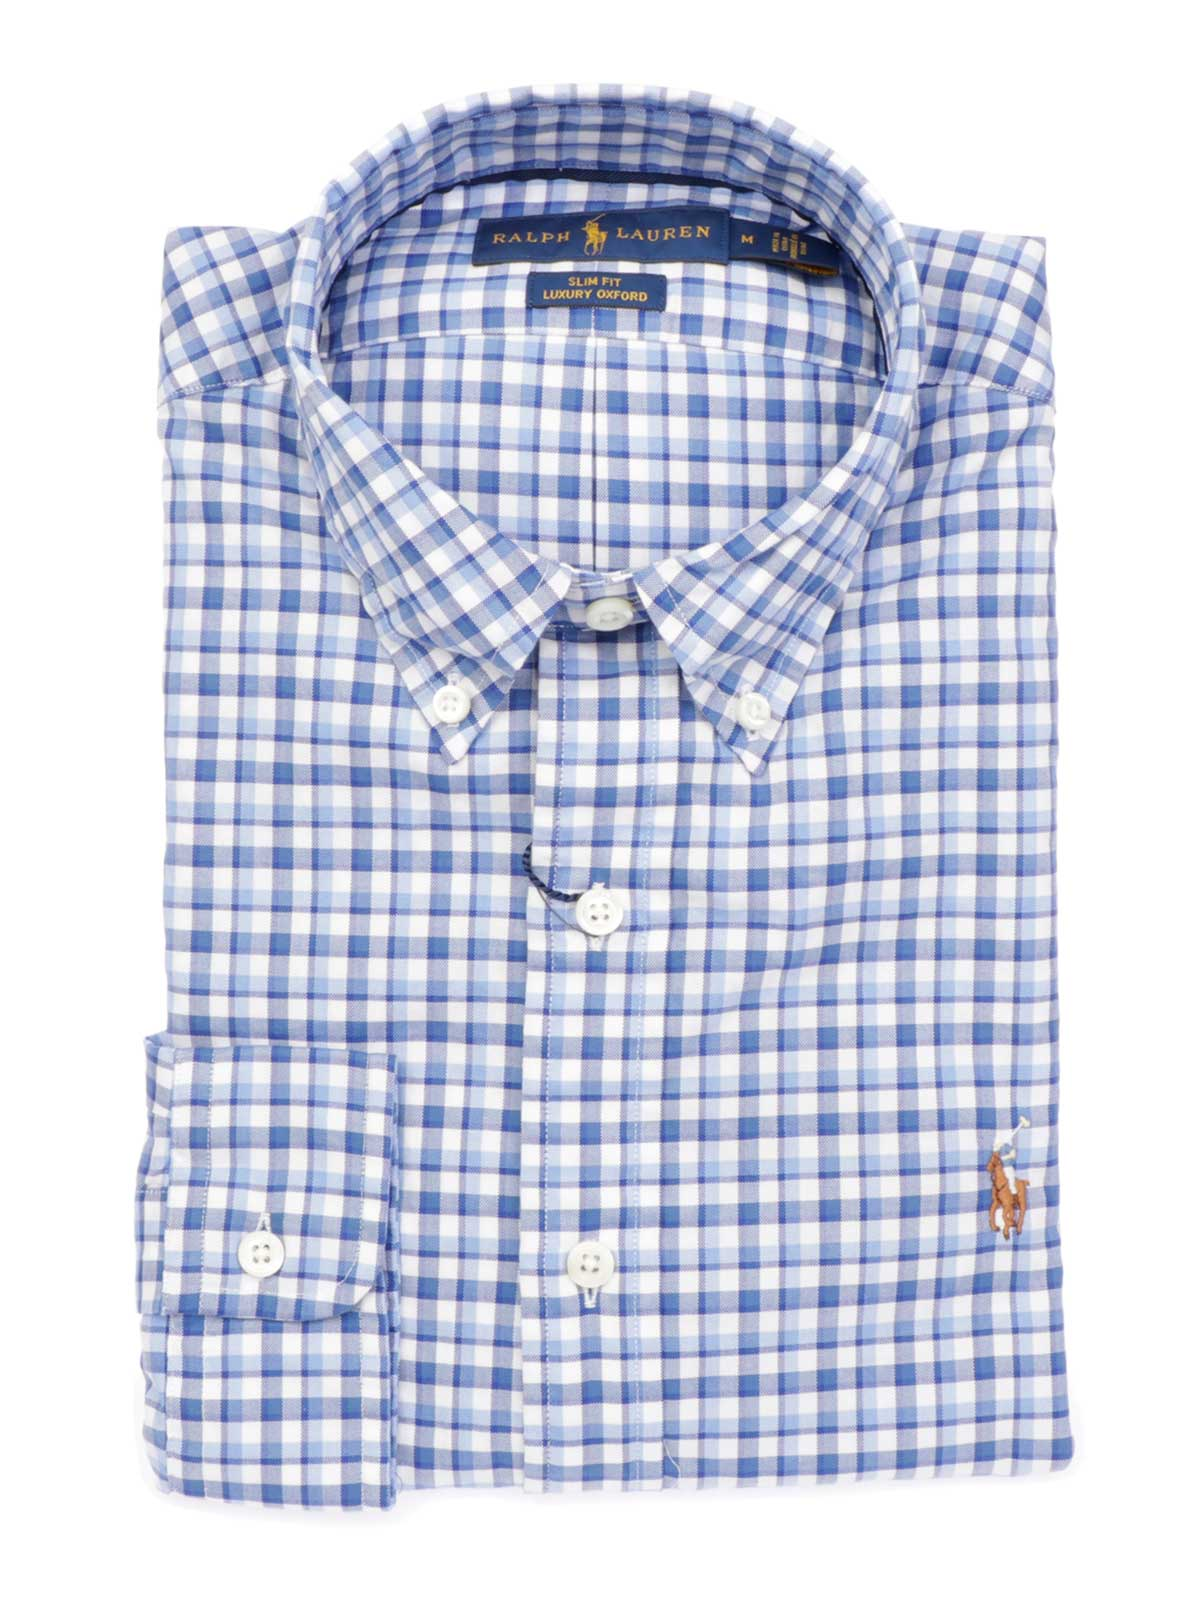 buy online 318d2 95ac2 POLO RALPH LAUREN Camicia Uomo Slim Fit a Quadretti